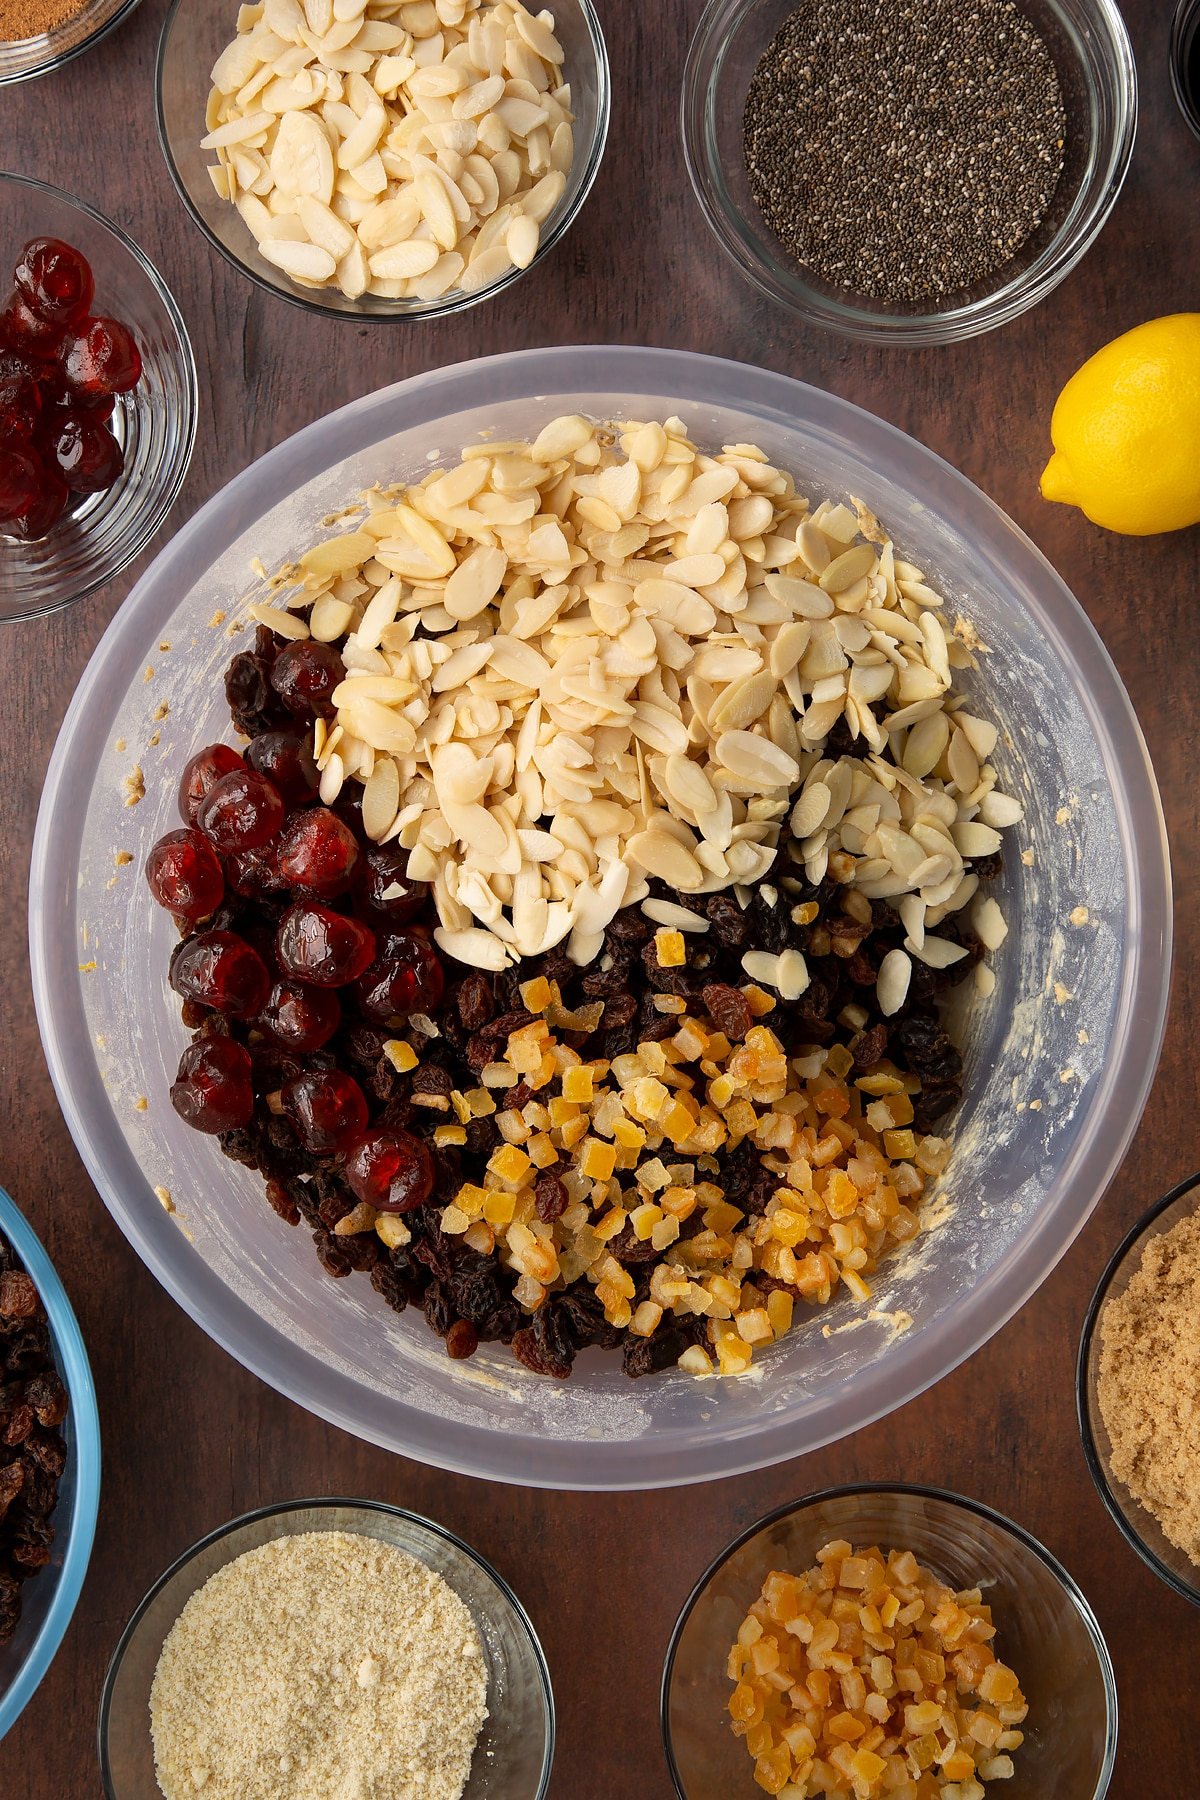 Butter, sugar, treacle, flour, almonds, spices, citrus juice and plant milk in a bowl with flaked almonds, cherries and mixed peel on top. Ingredients to make vegan Christmas cake surround the bowl.